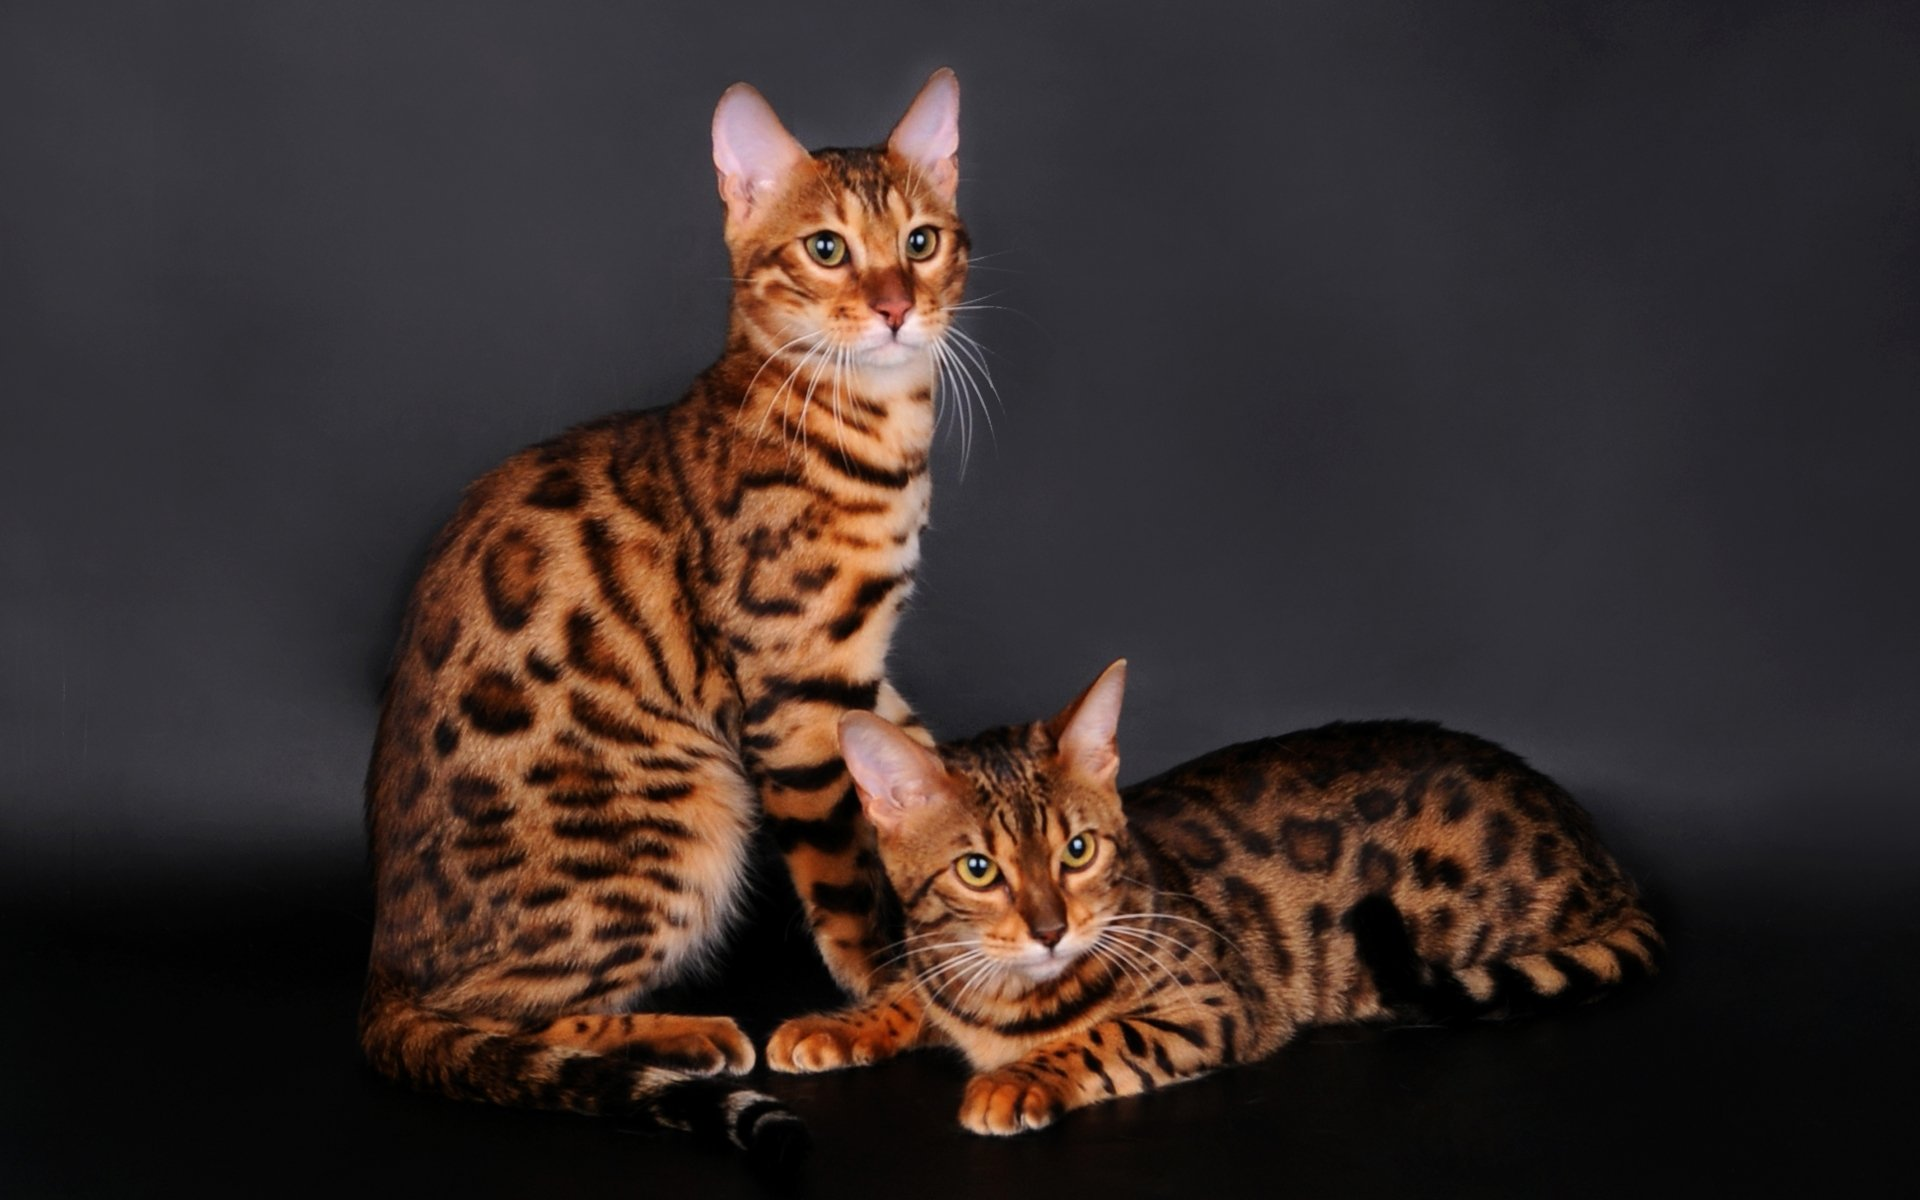 Cute Baby Couple Wallpapers For Mobile Bengal Cat 4k Ultra Hd Wallpaper Background Image